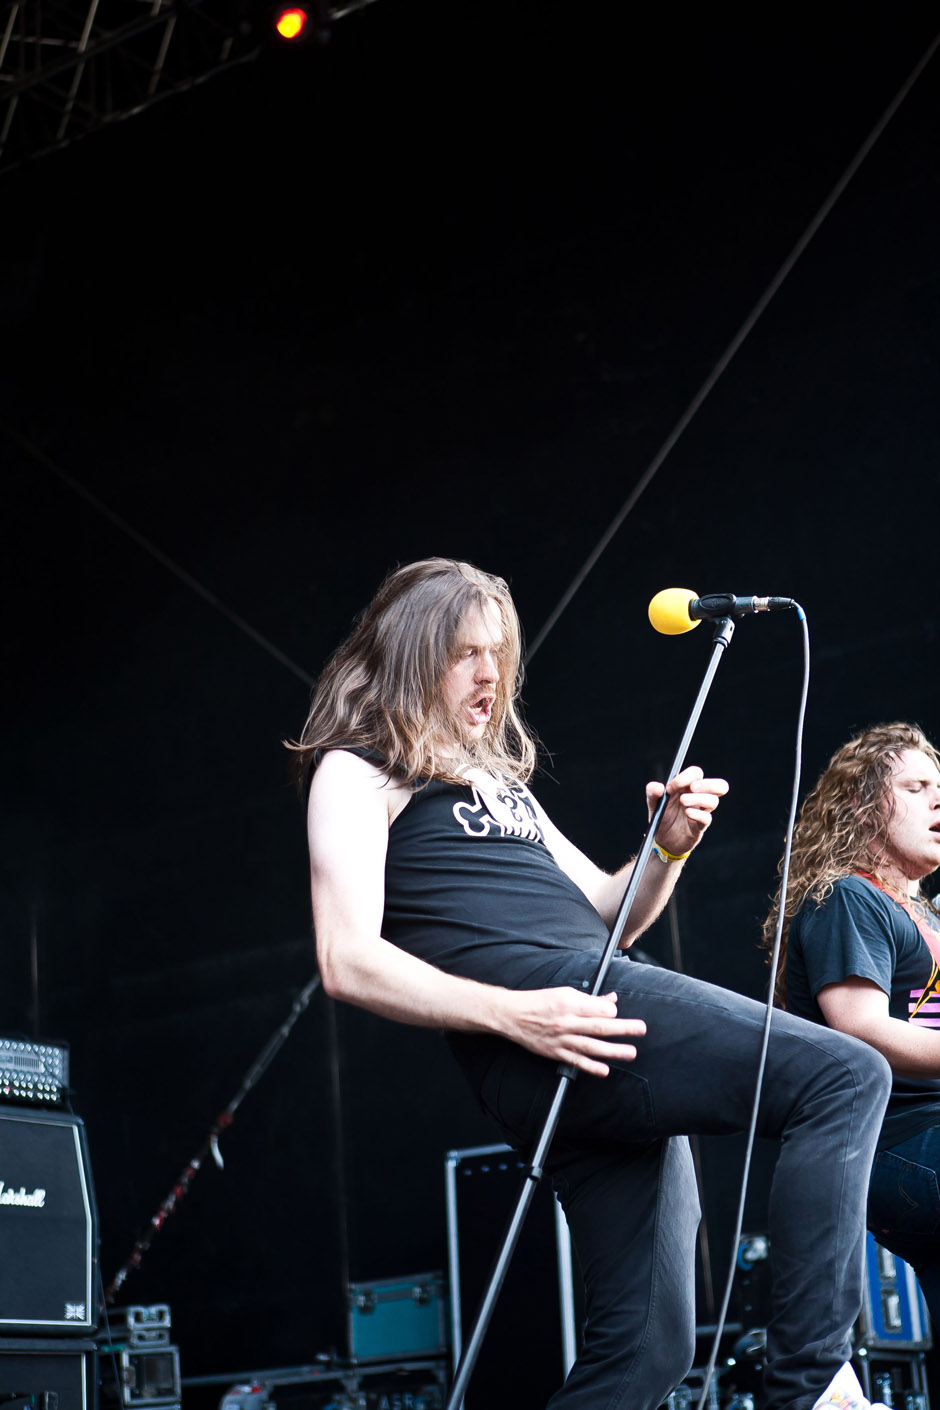 Gamma Bomb live, Extremefest 2012 in Hünxe